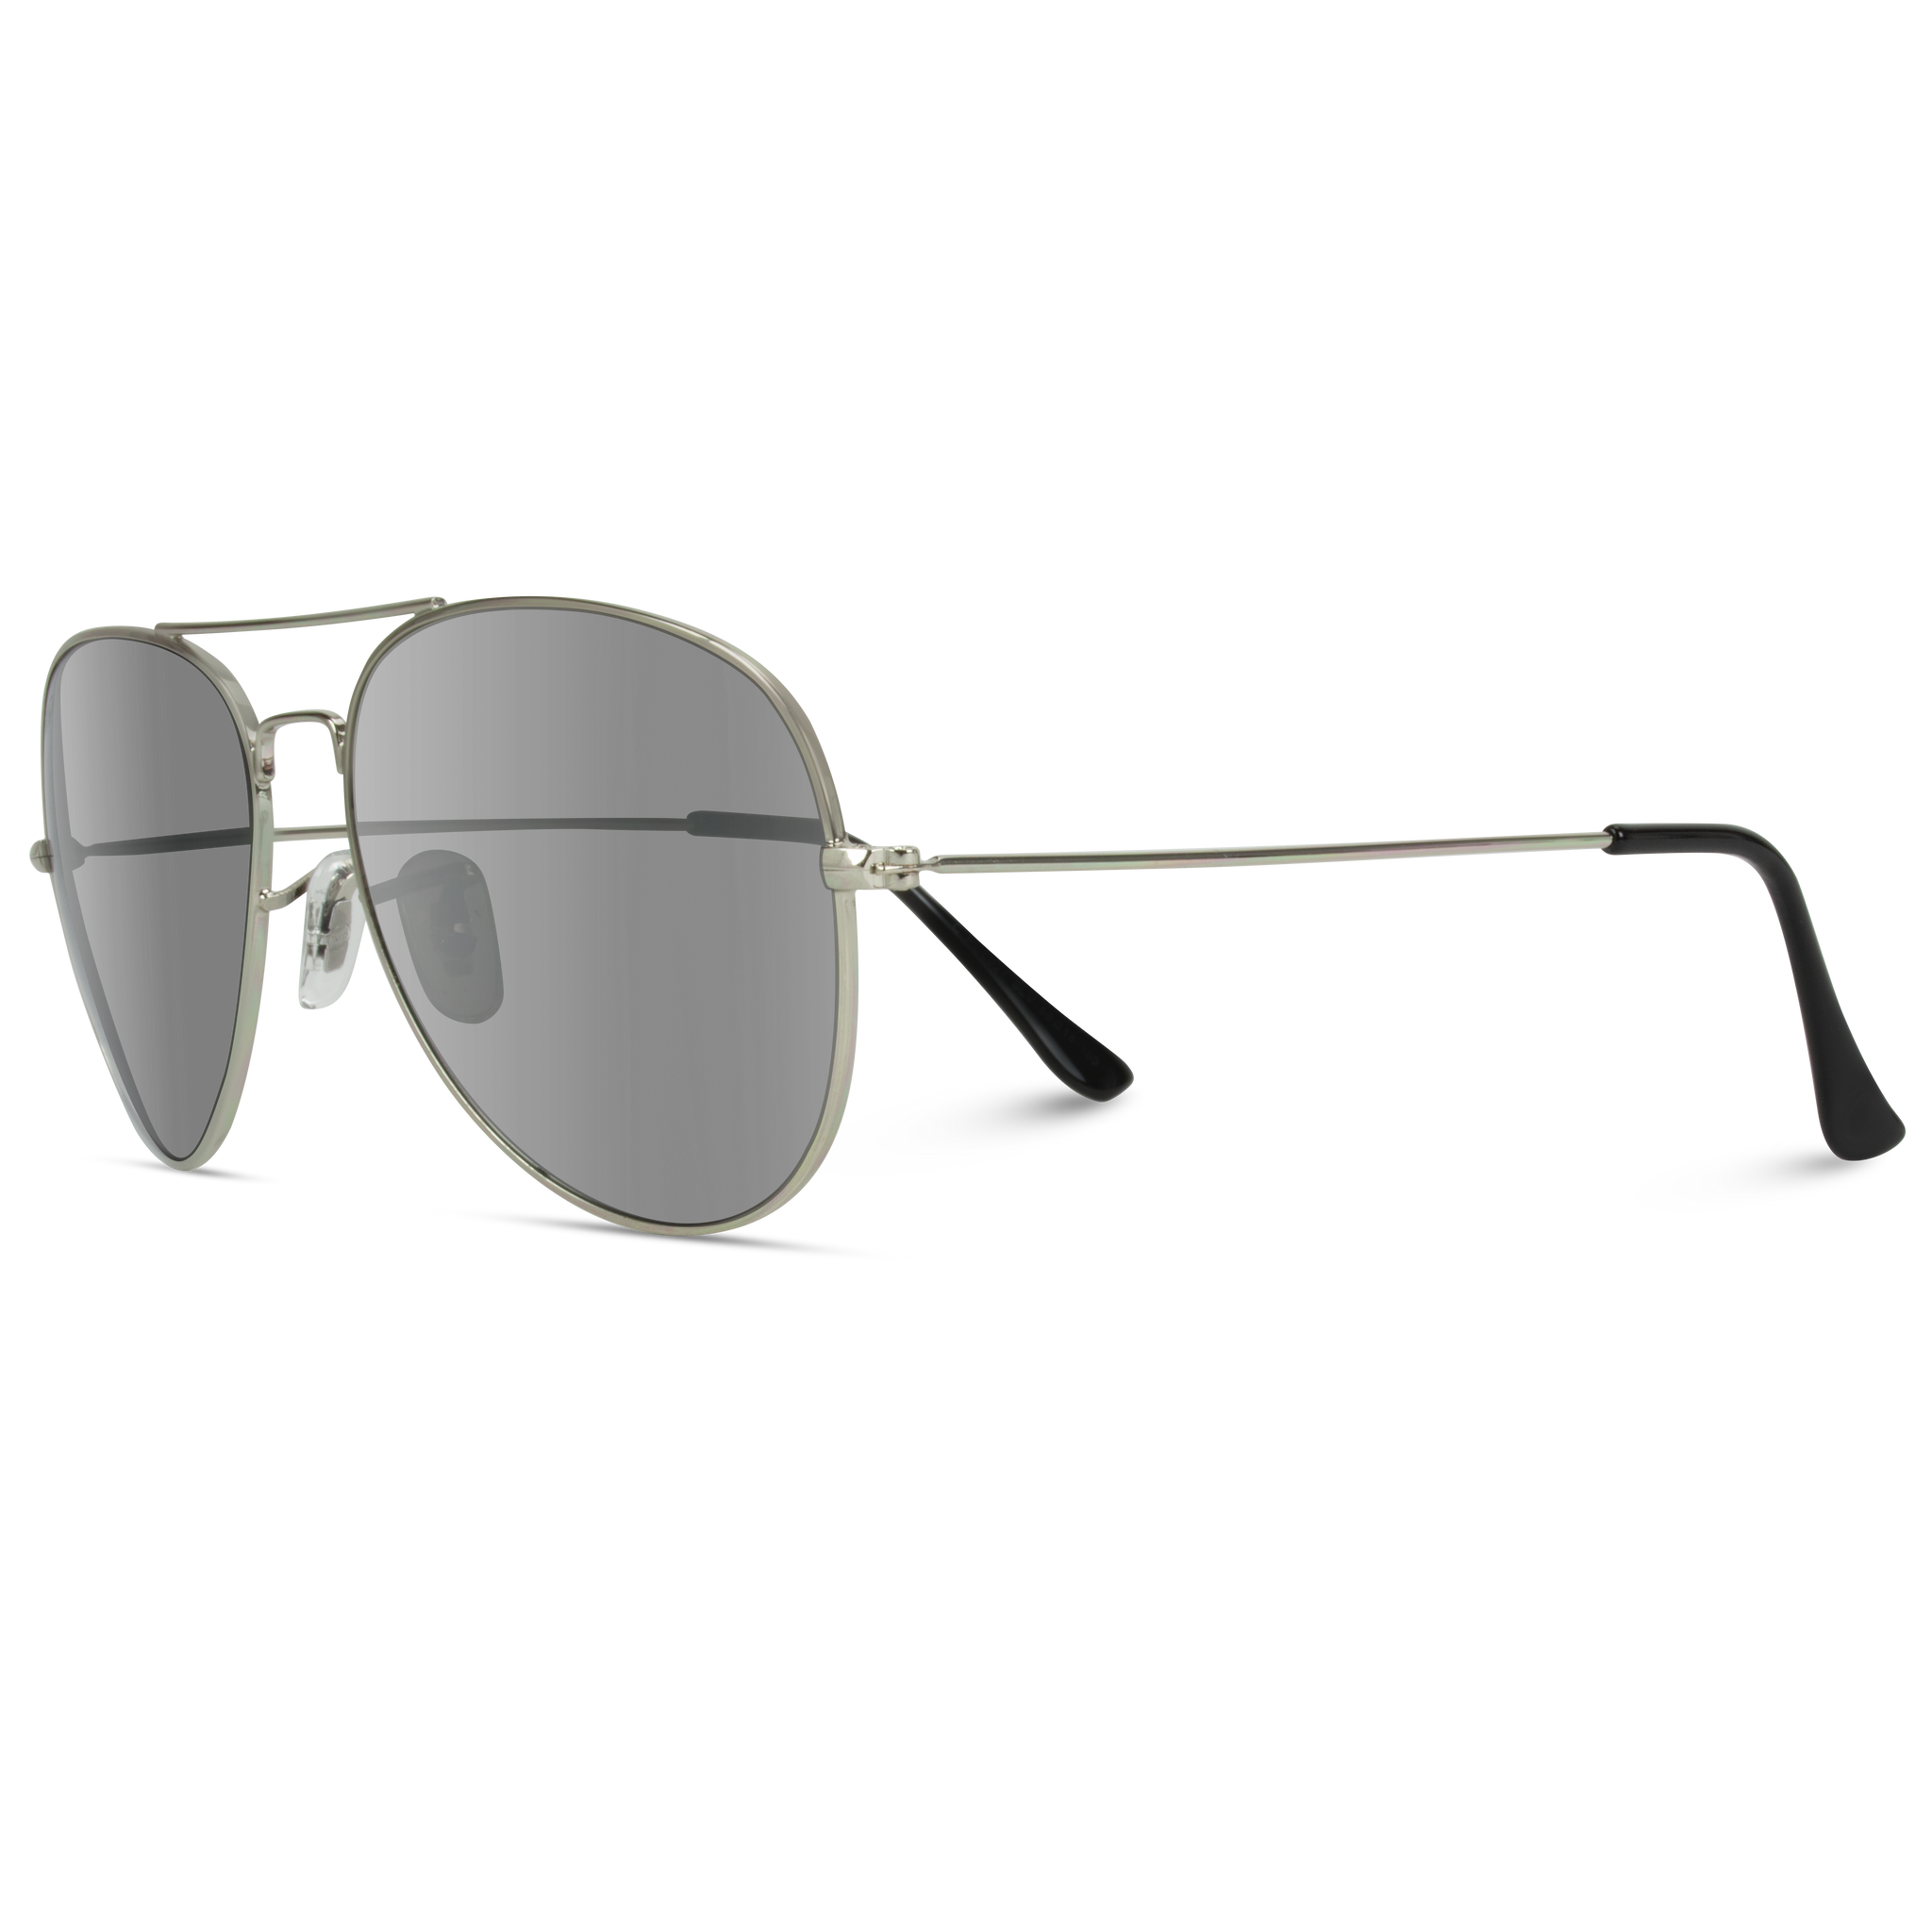 Levi Classic Full Mirrored Lens Metal Frame Aviator Sunglasses